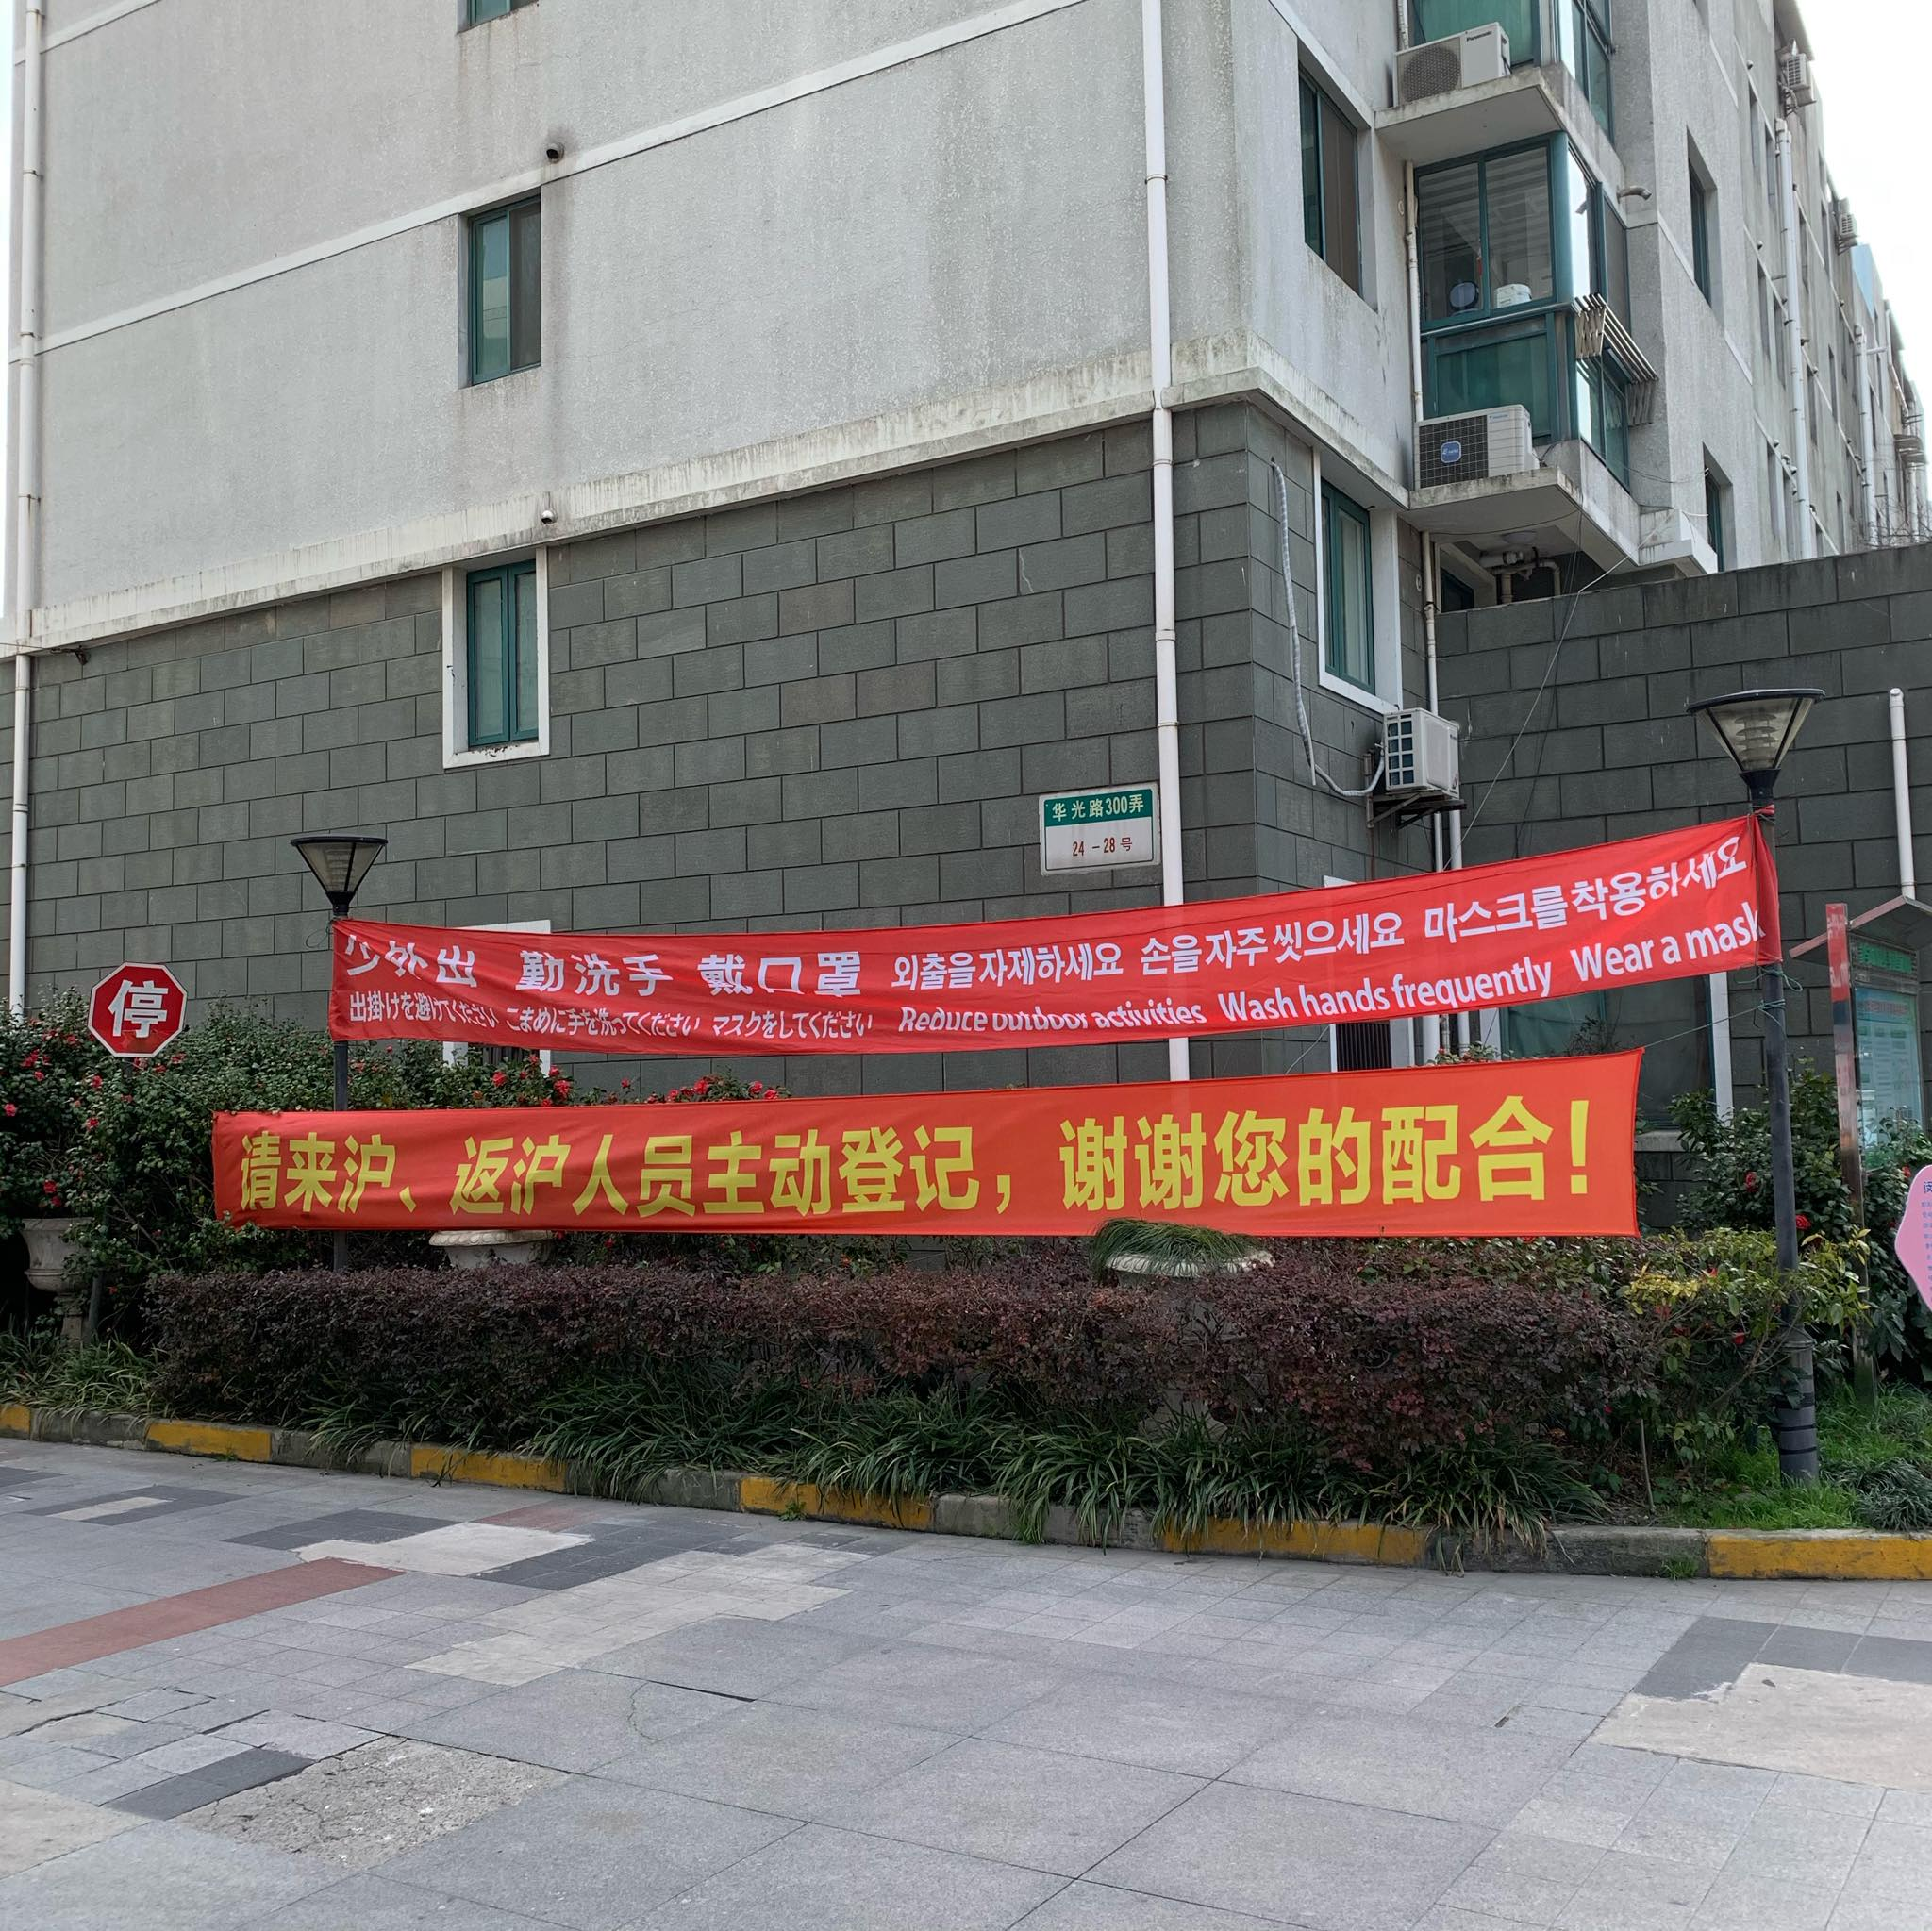 """red banners at apartment entrance stating """"reduce outdoor activities, wash hands frequently, wear a mask"""" in four languages"""